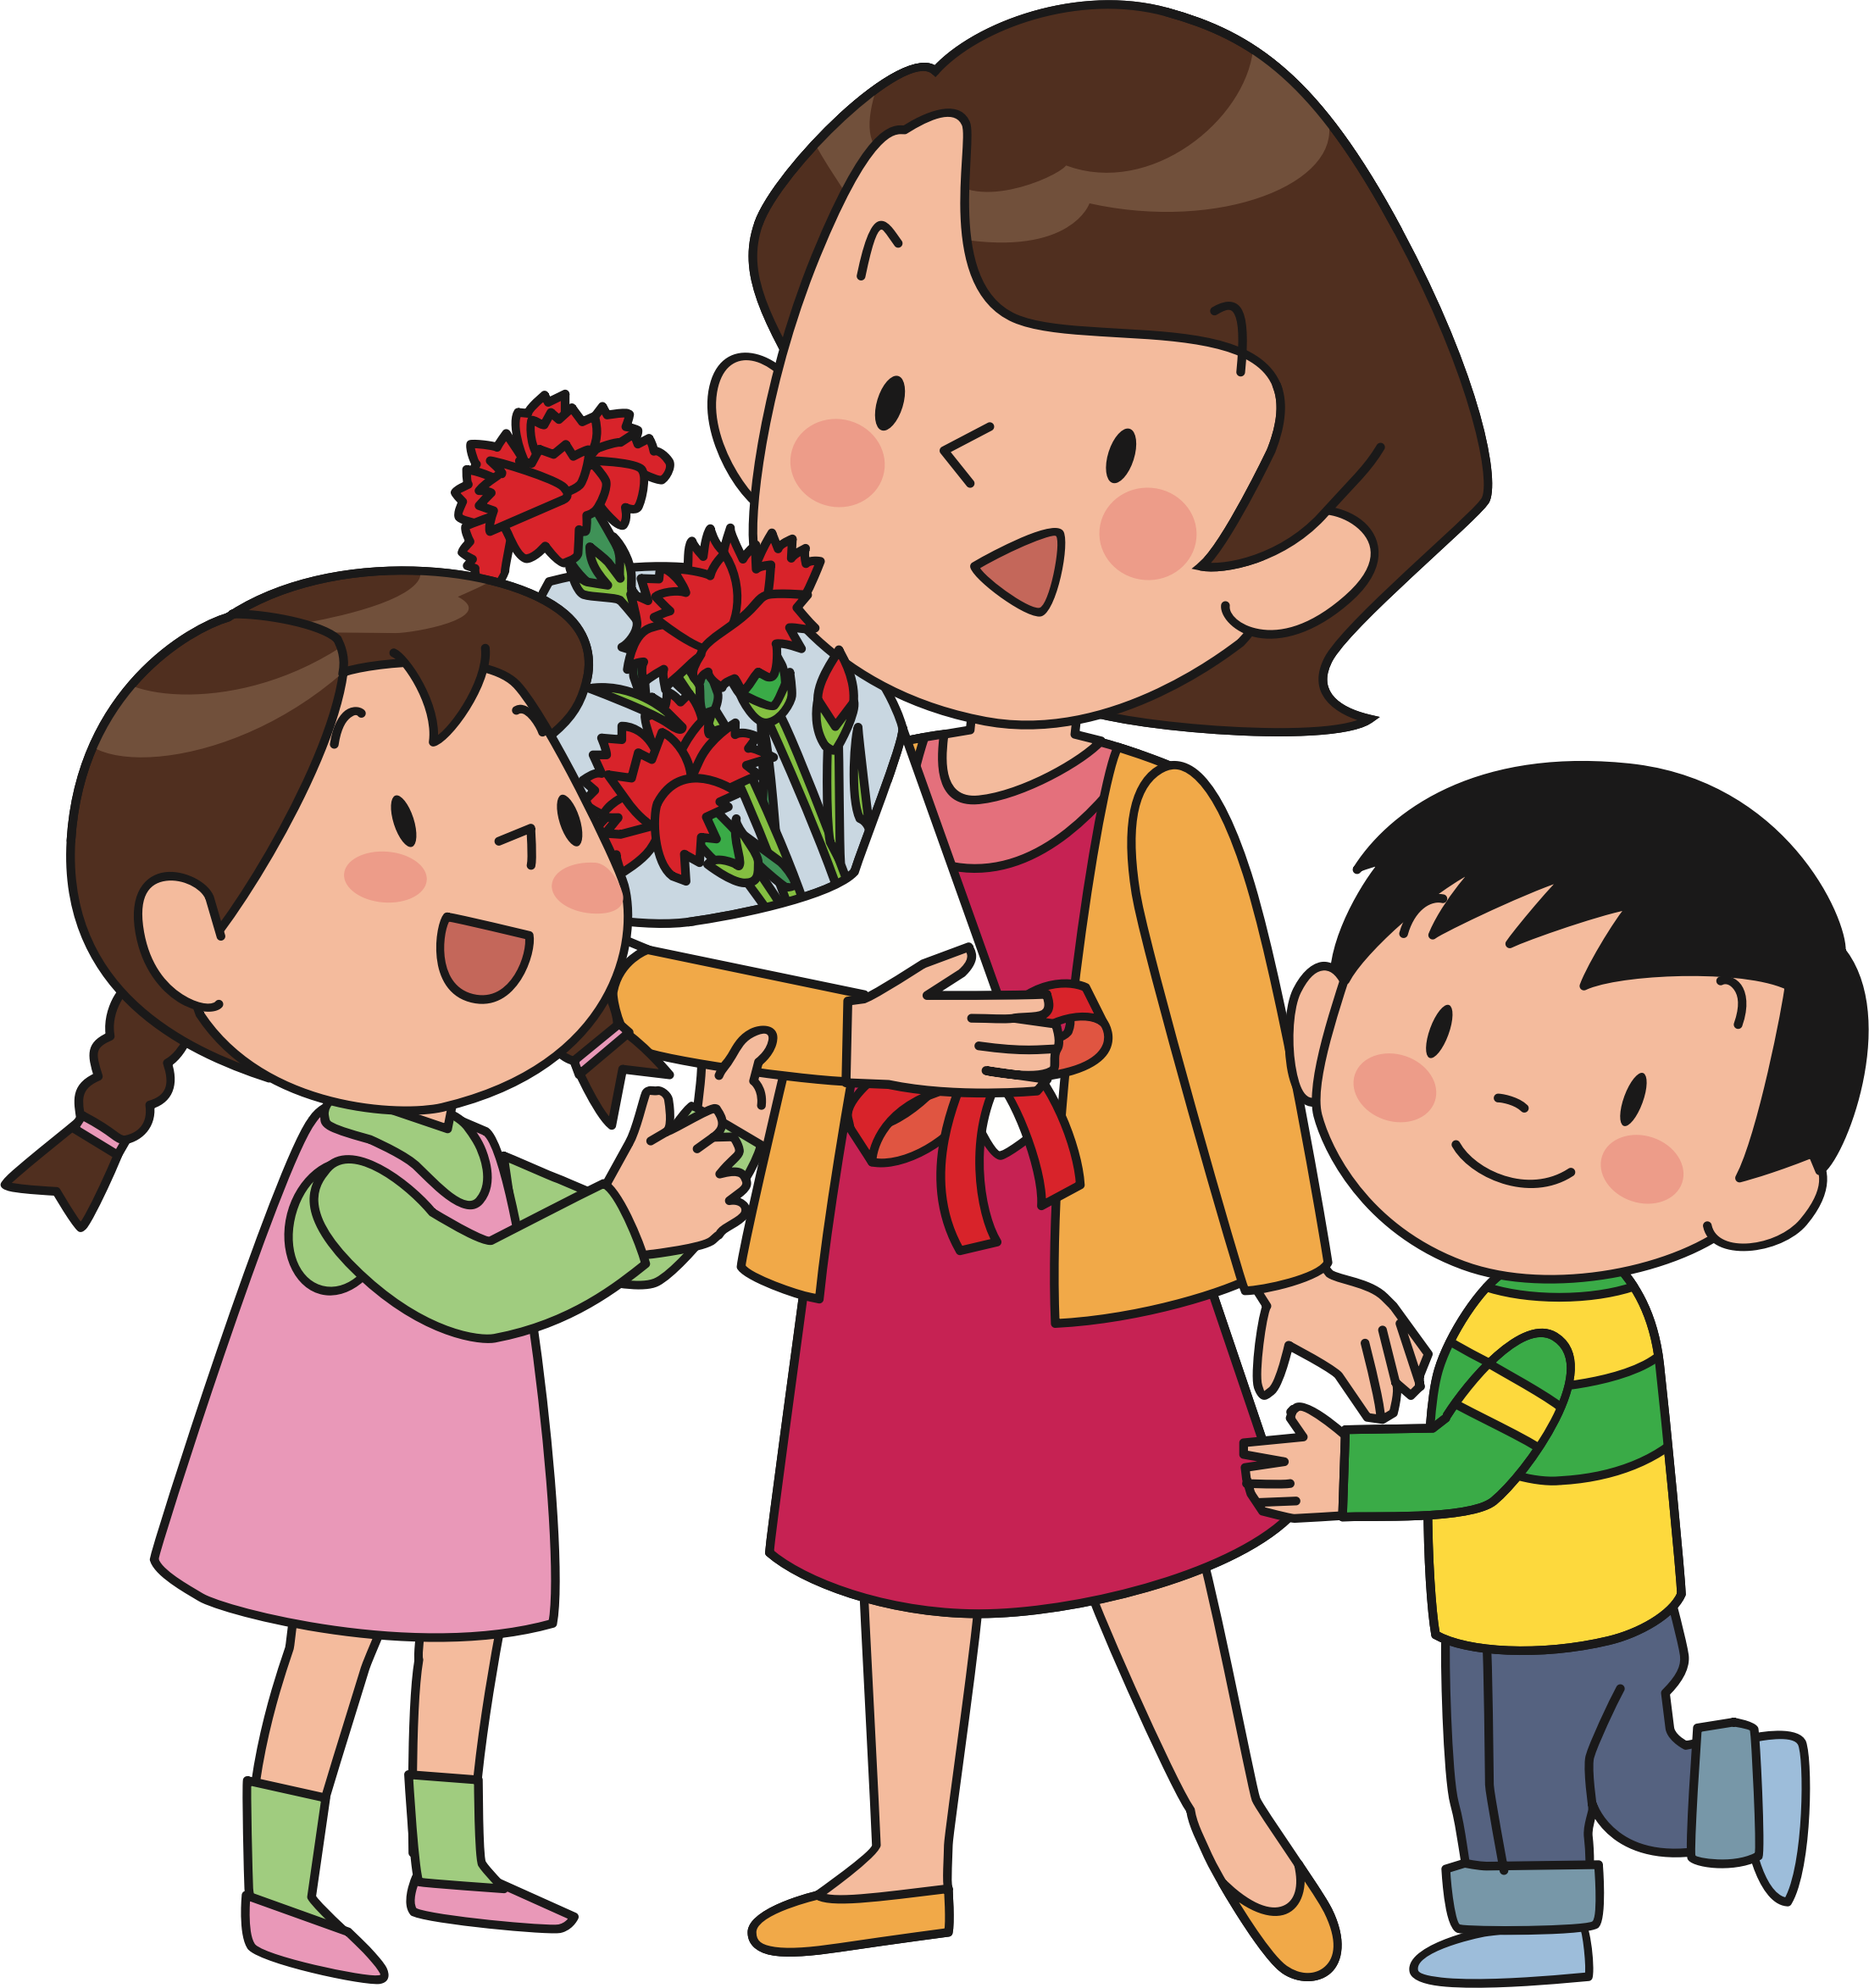 Mom hugging child clipart images gallery for free download.